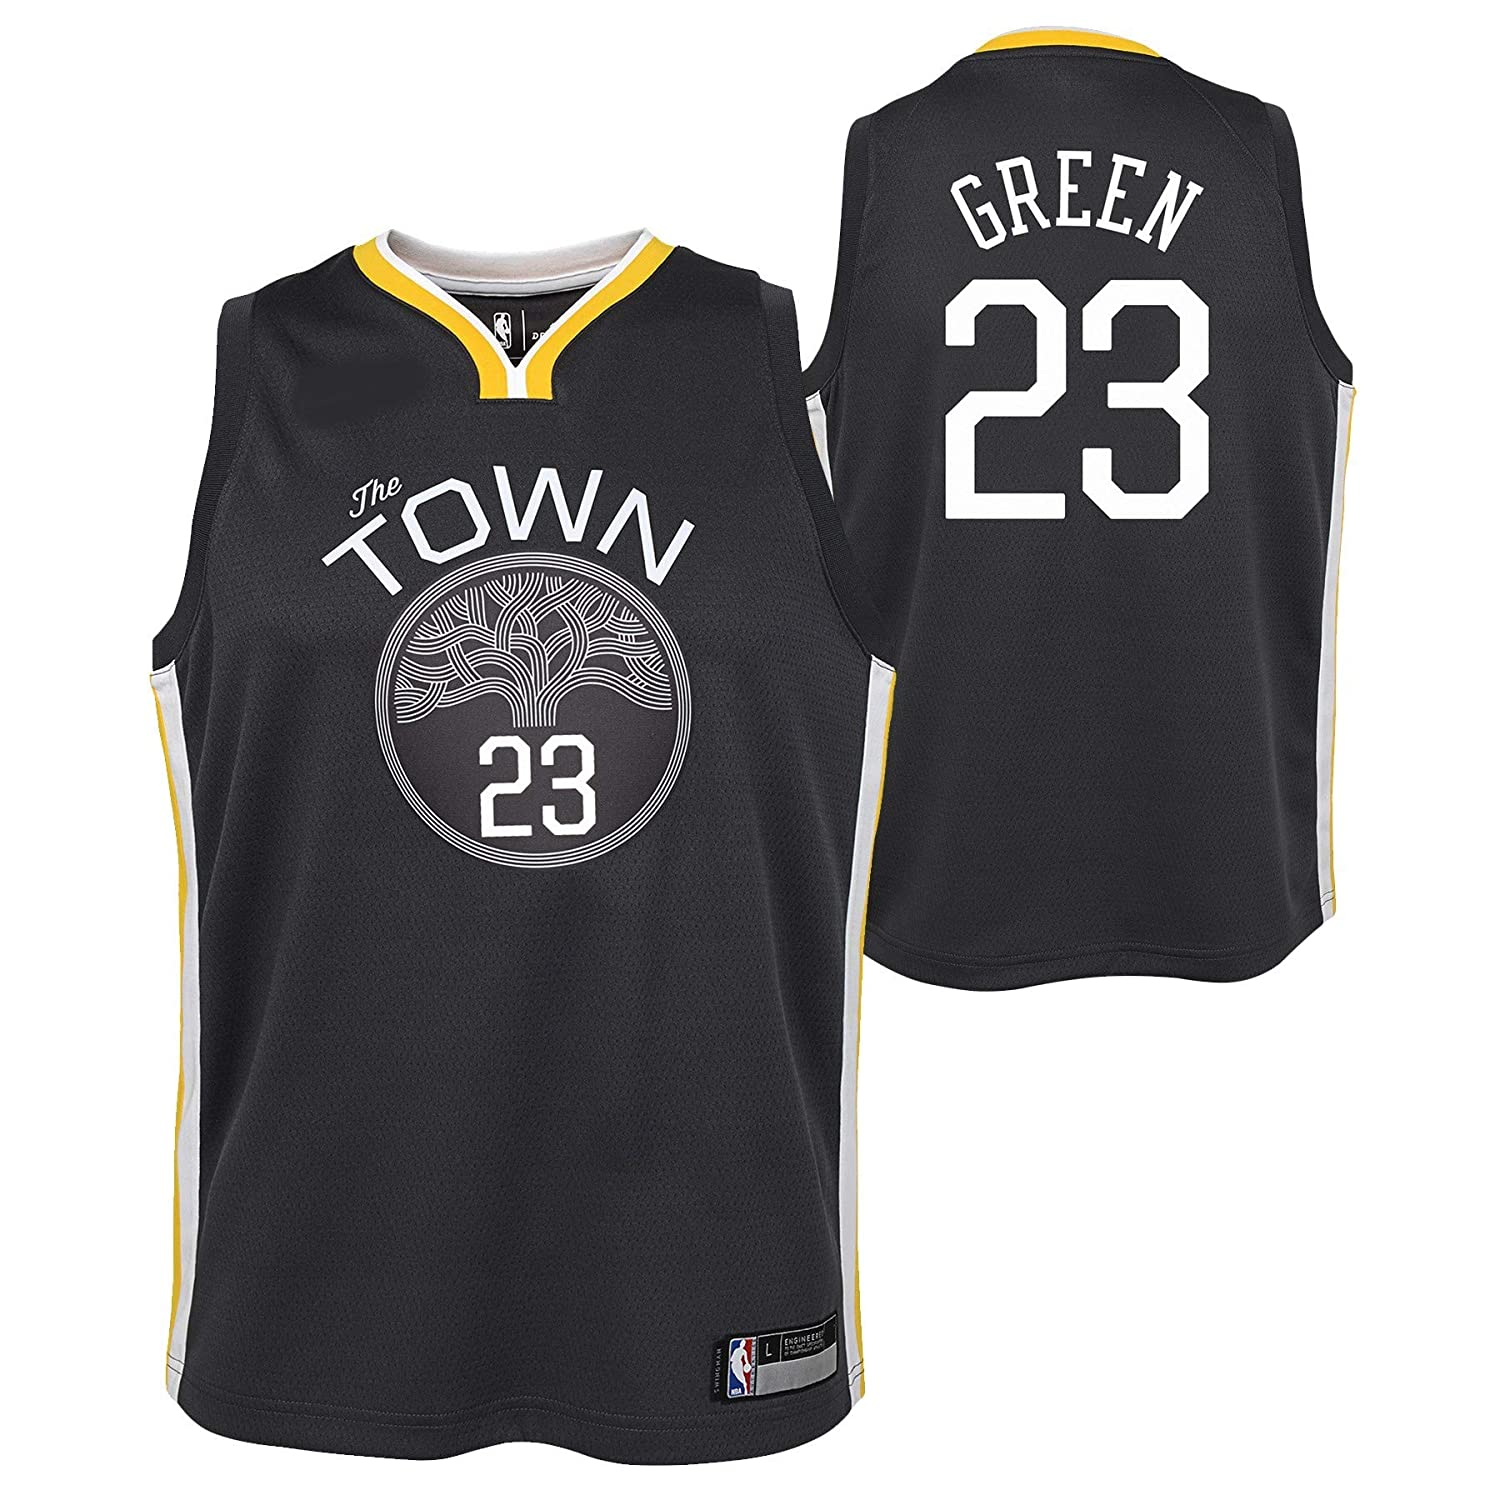 online store f2972 d3381 Amazon.com : Outerstuff Golden State Warriors Youth 'The ...